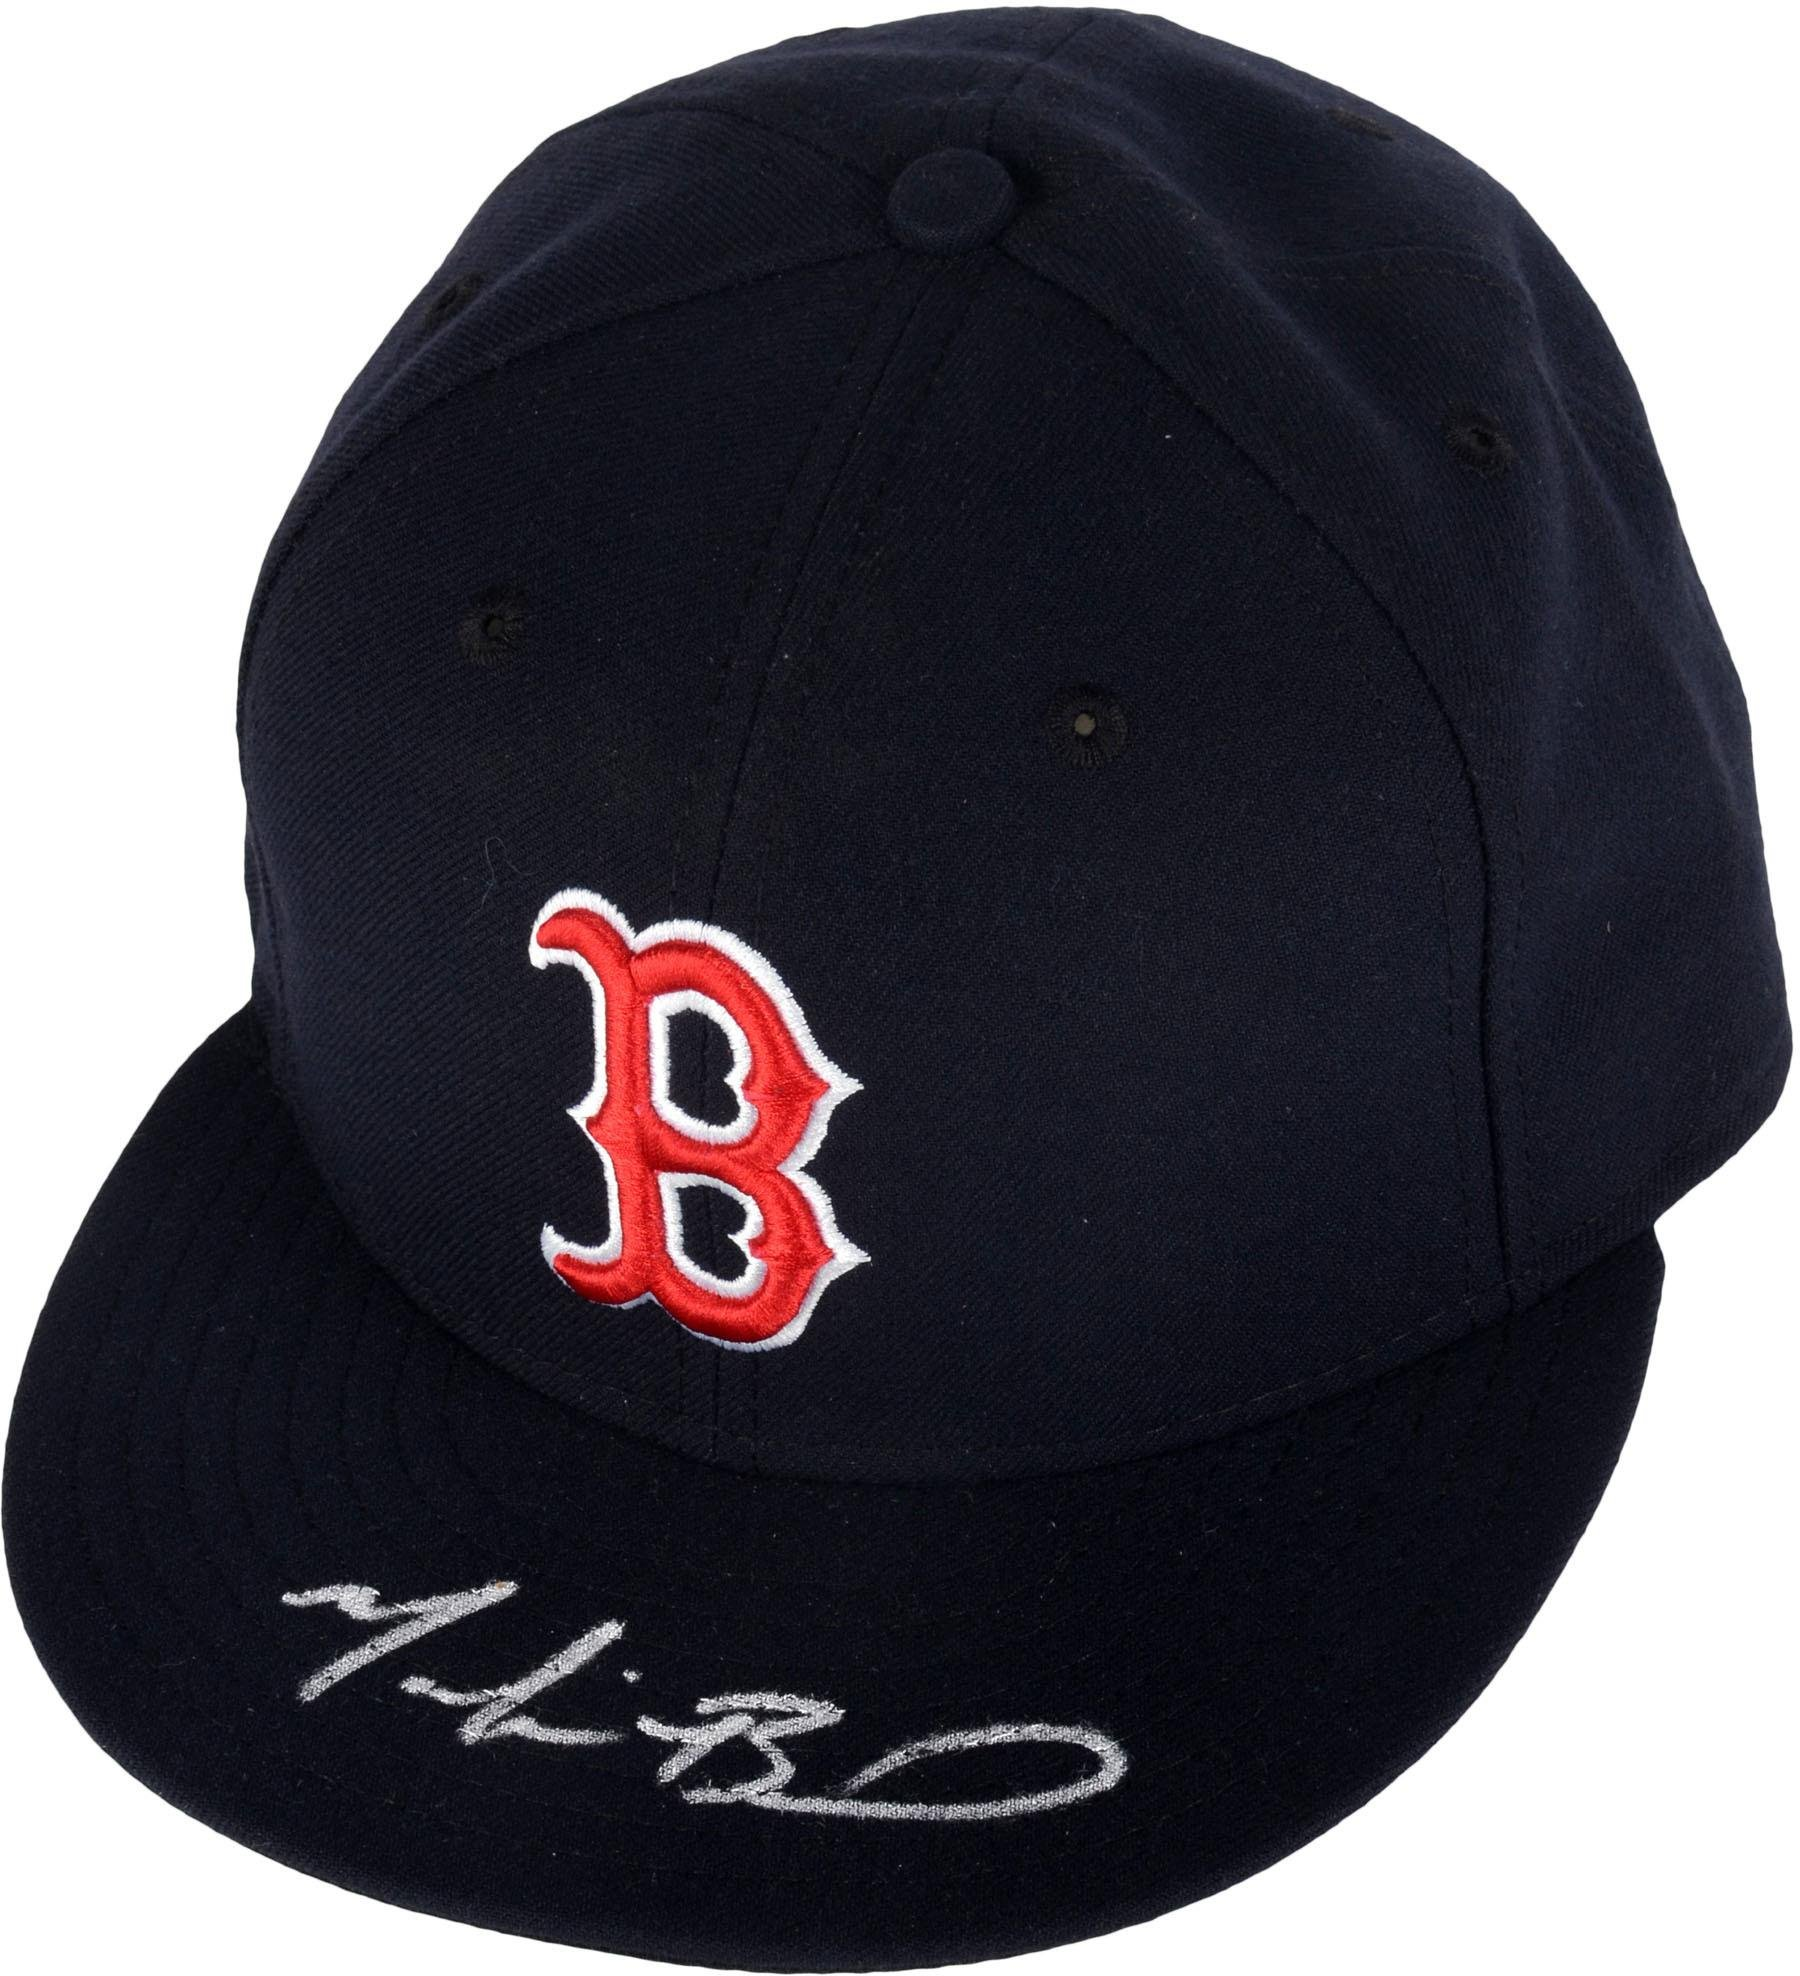 Mookie Betts Boston Red Sox Autographed New Era Baseball Cap Fanatics Authentic Certified Autographed Hats